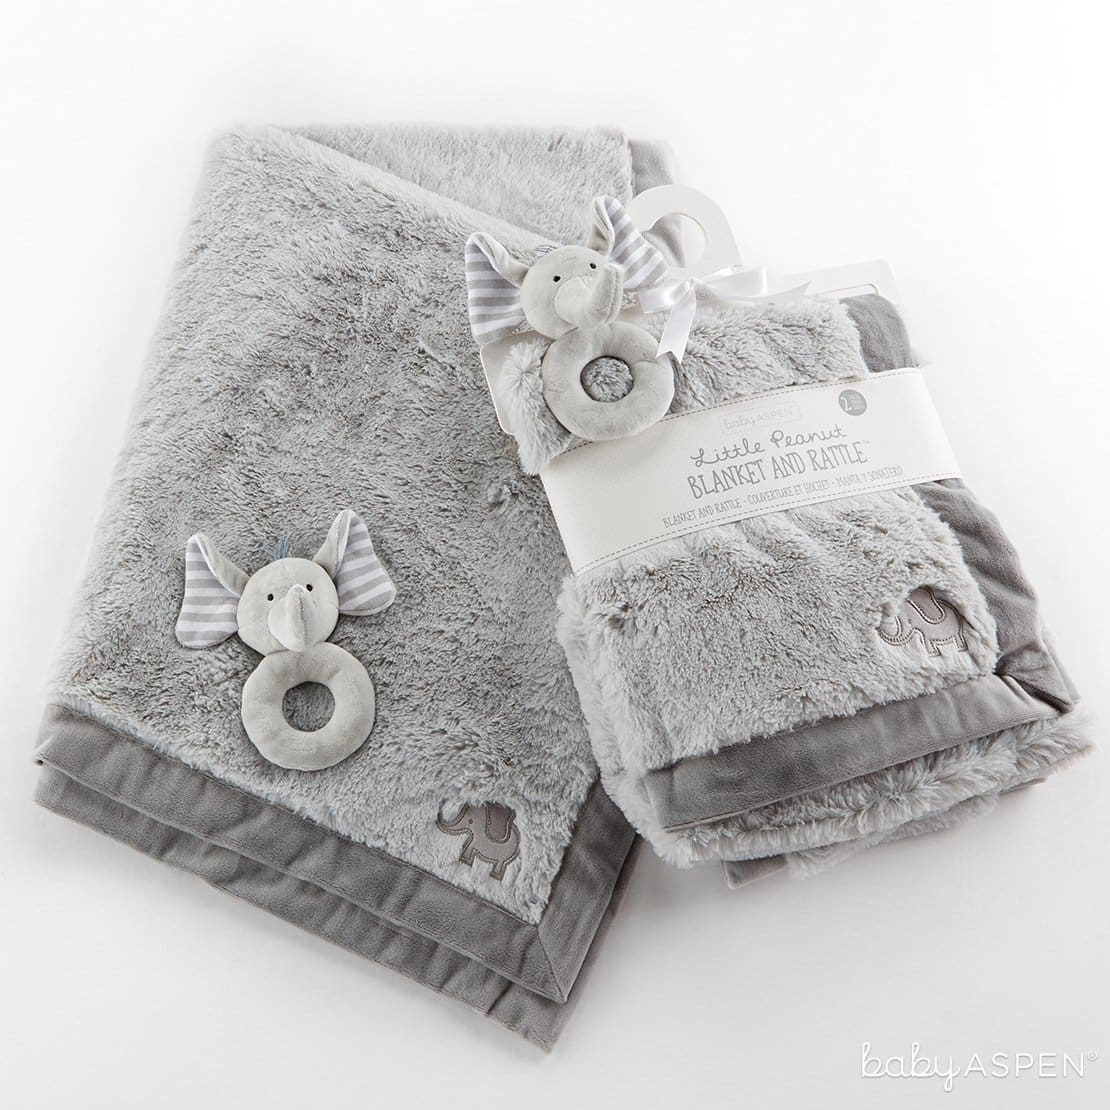 Little Peanut Elephant Blanket &Rattle Set